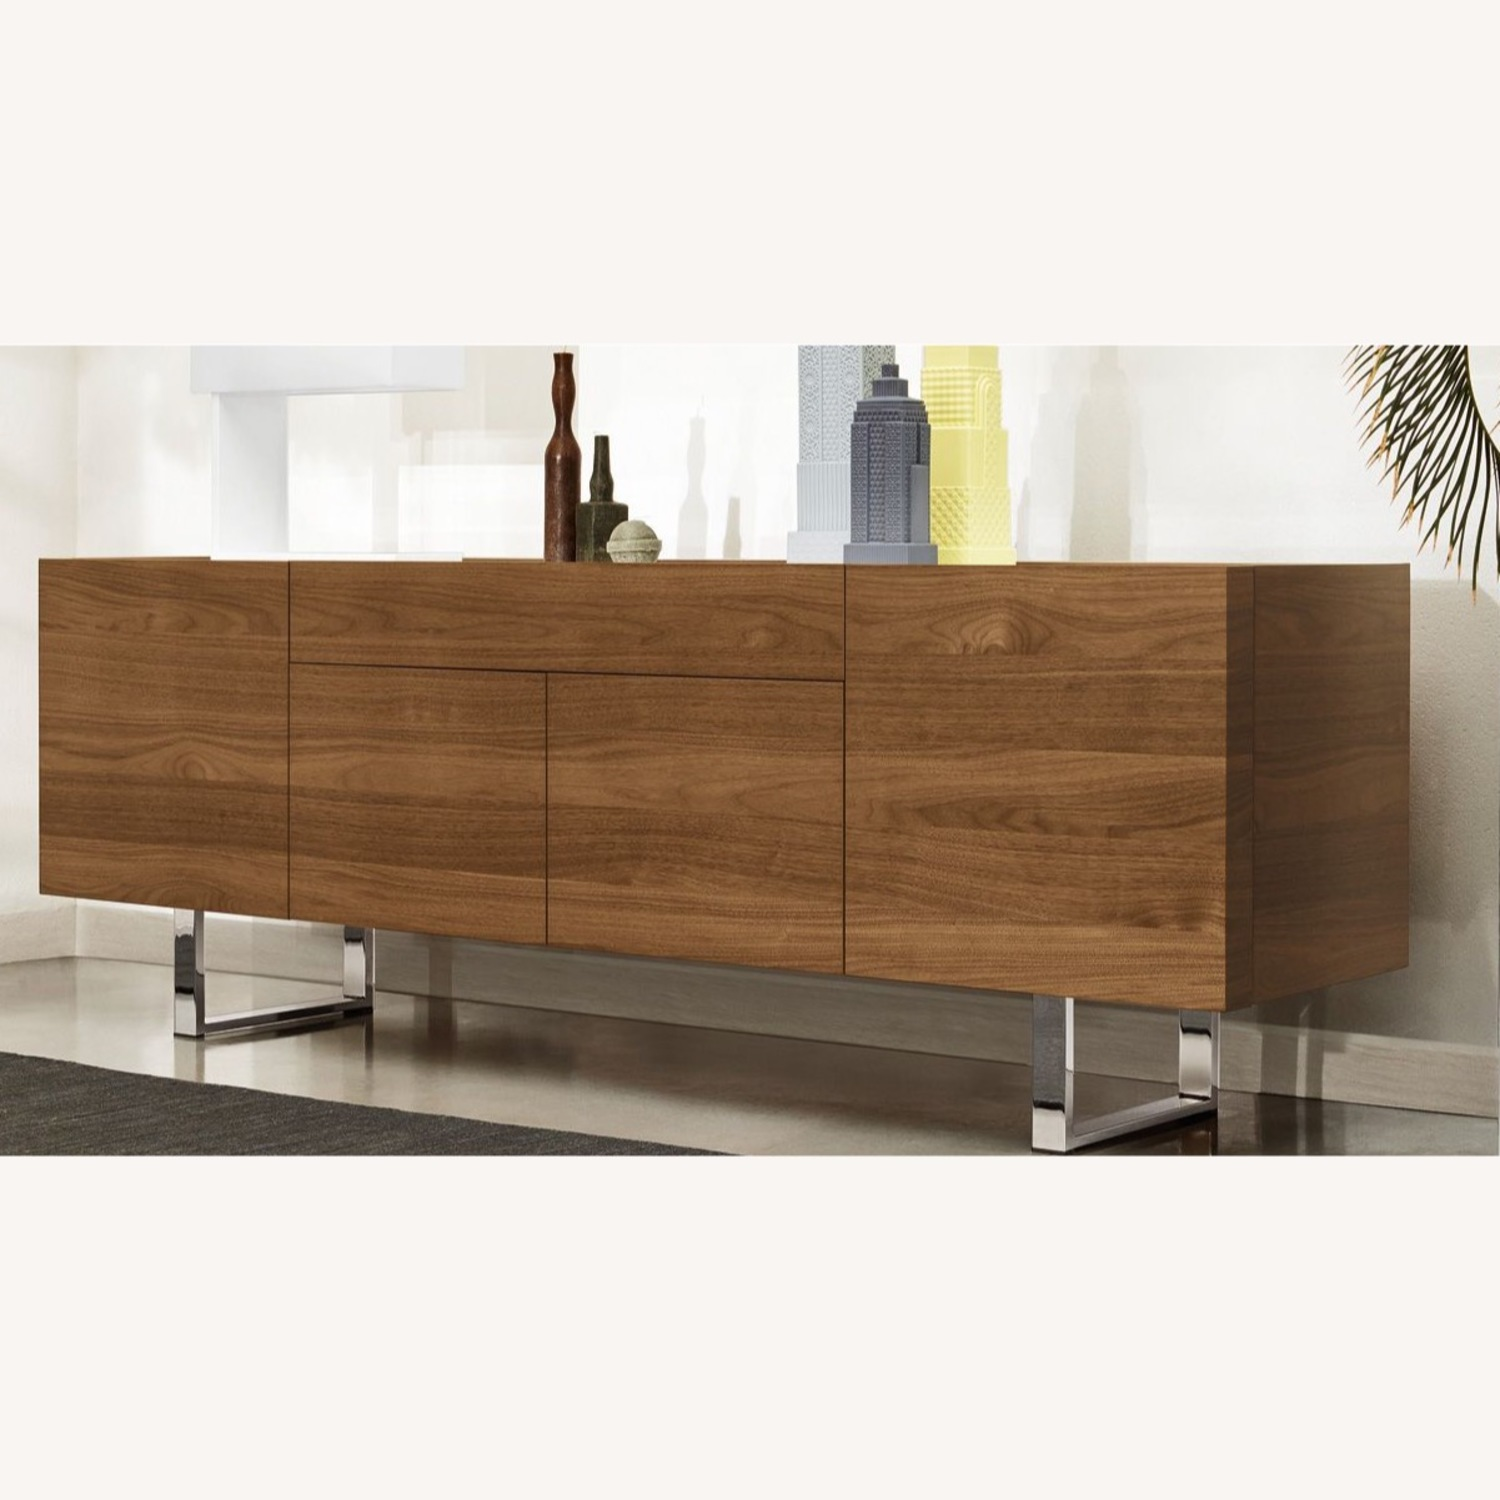 Calligaris Horizon Walnut Wood Dresser.